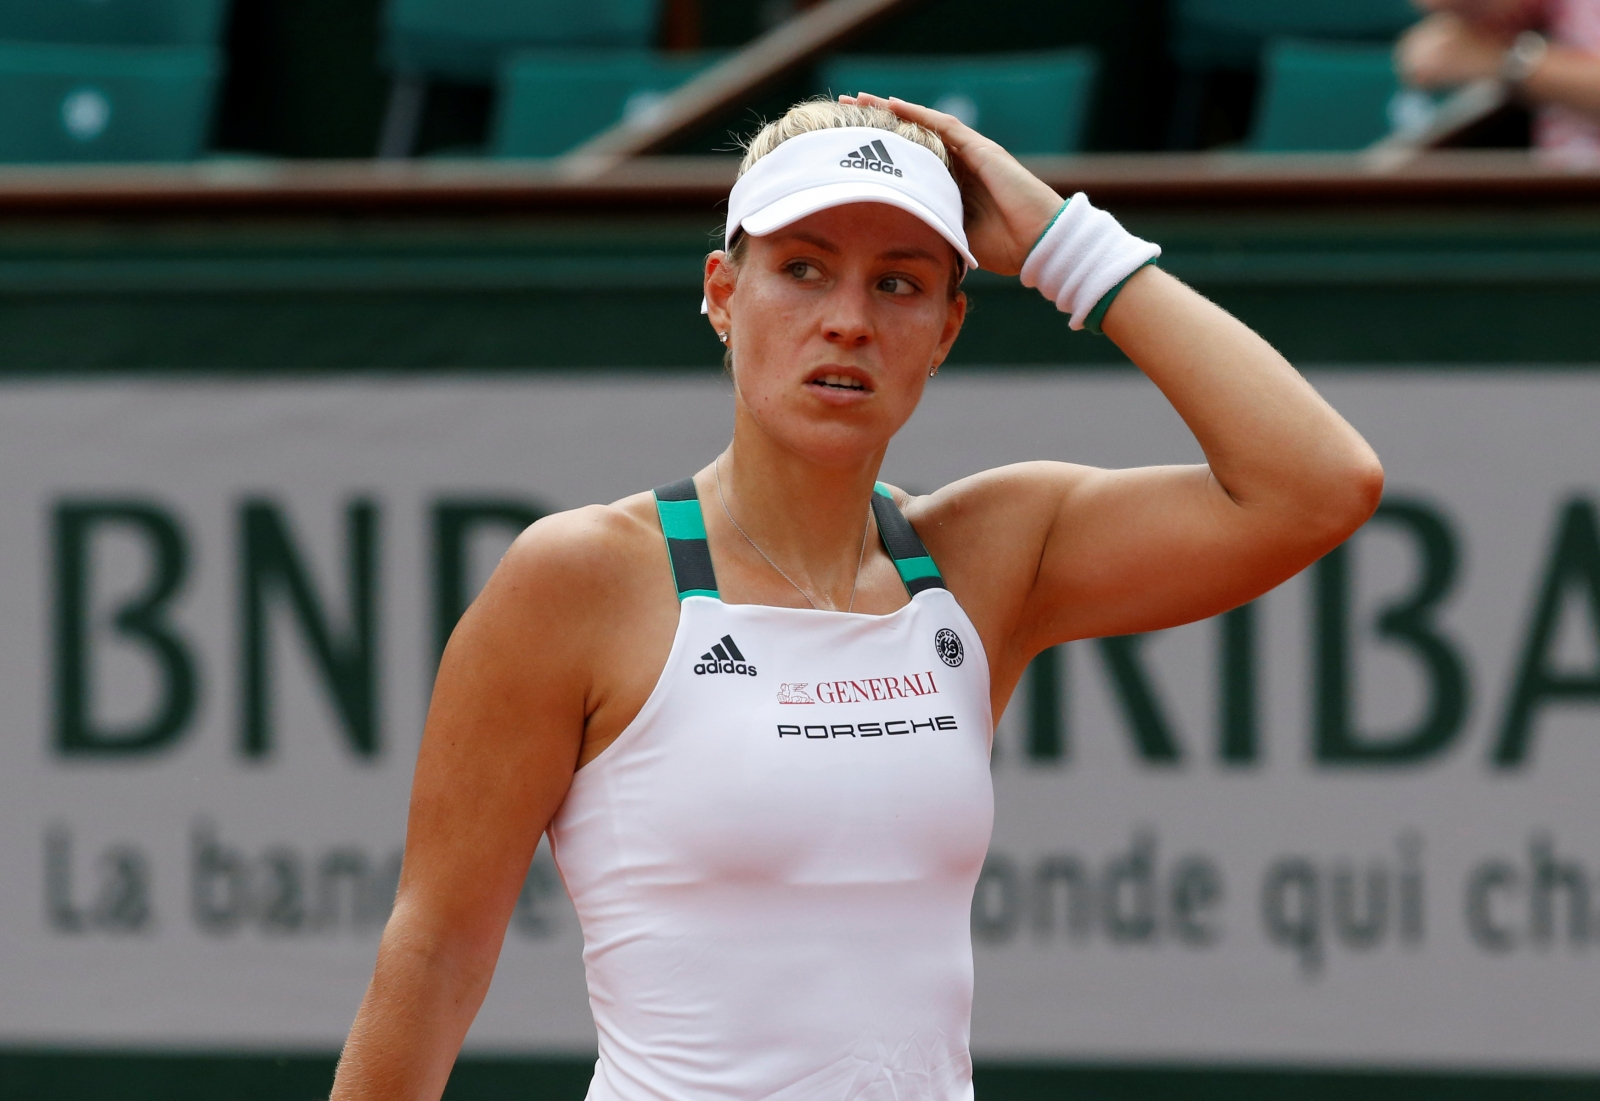 Bertens rallies, advances at French Open